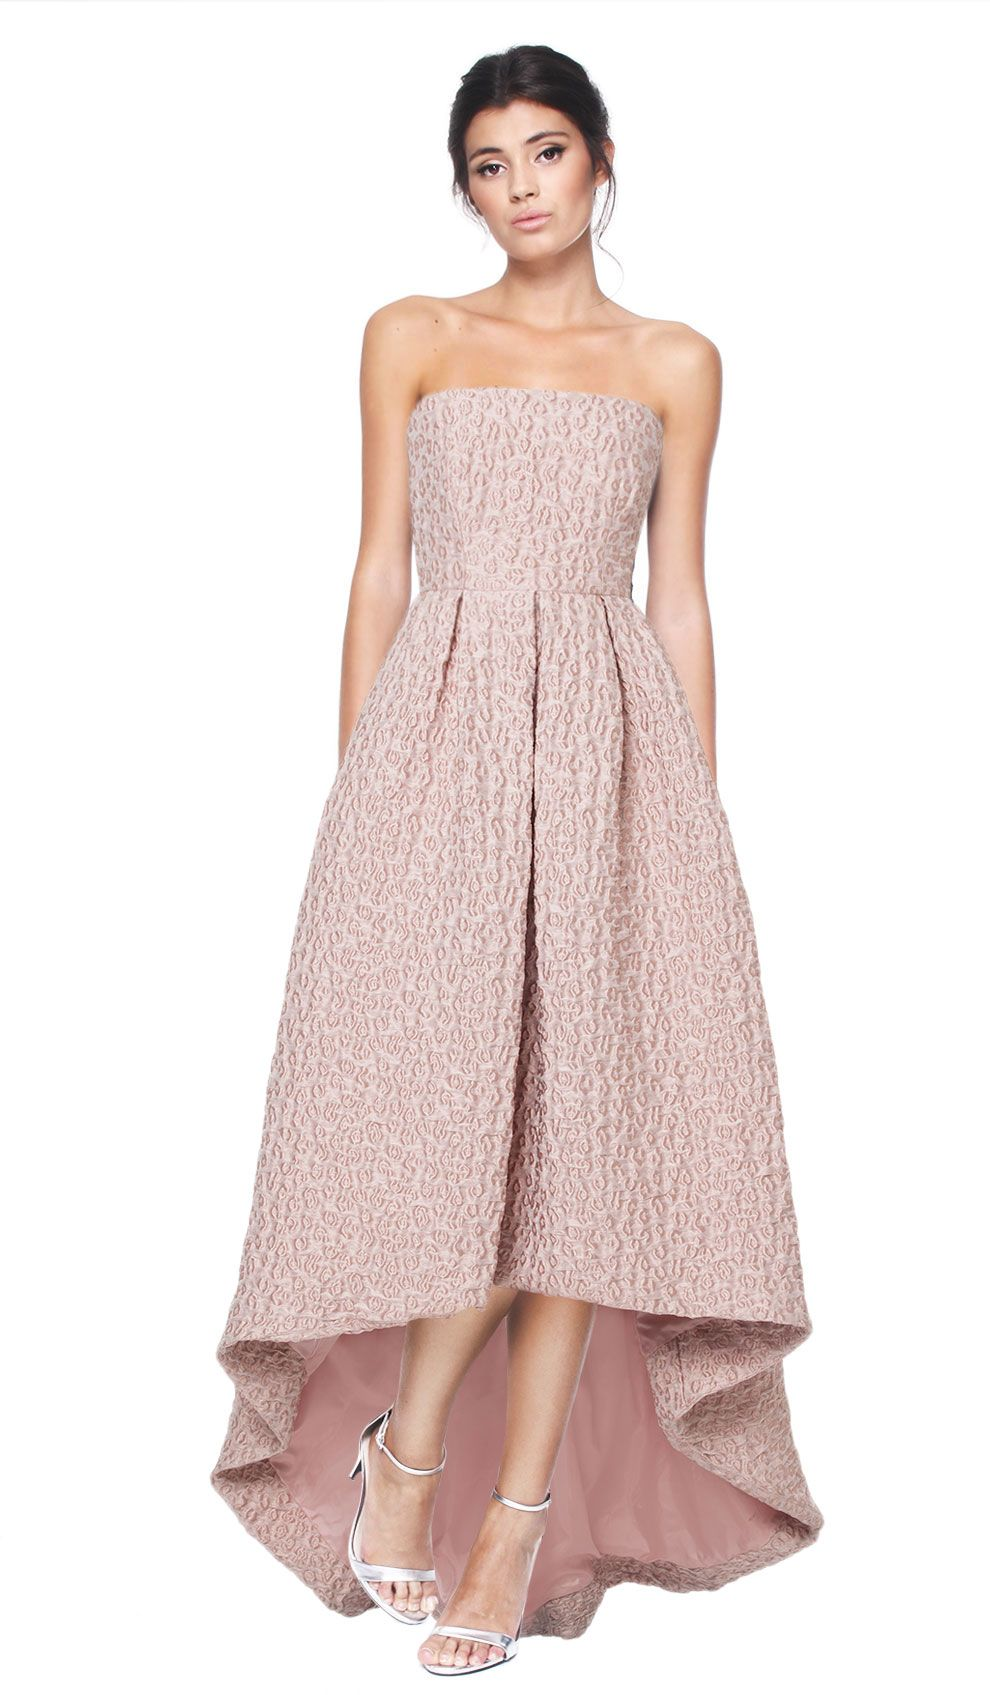 Strapless dusty rose dress hire cynthia rowley front high hire a dress with gorgeous jacquard detail in this dusty rose colour that will make you the best dressed guest this season hire bridesmaid dresses or s ombrellifo Images